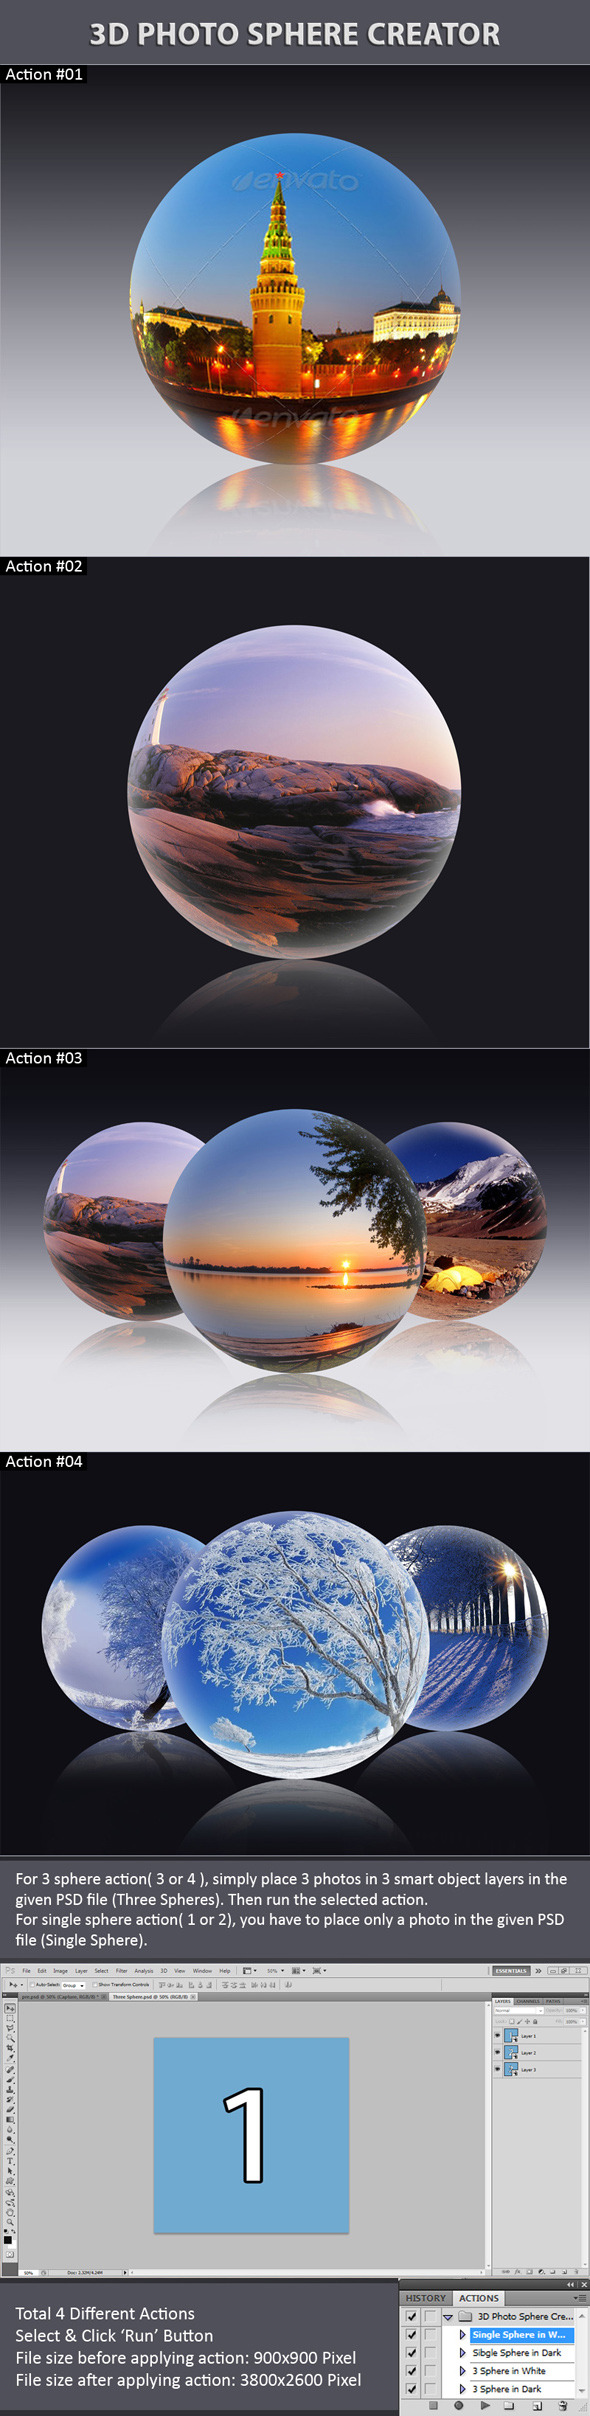 3D Photo Sphere Creator - Utilities Actions